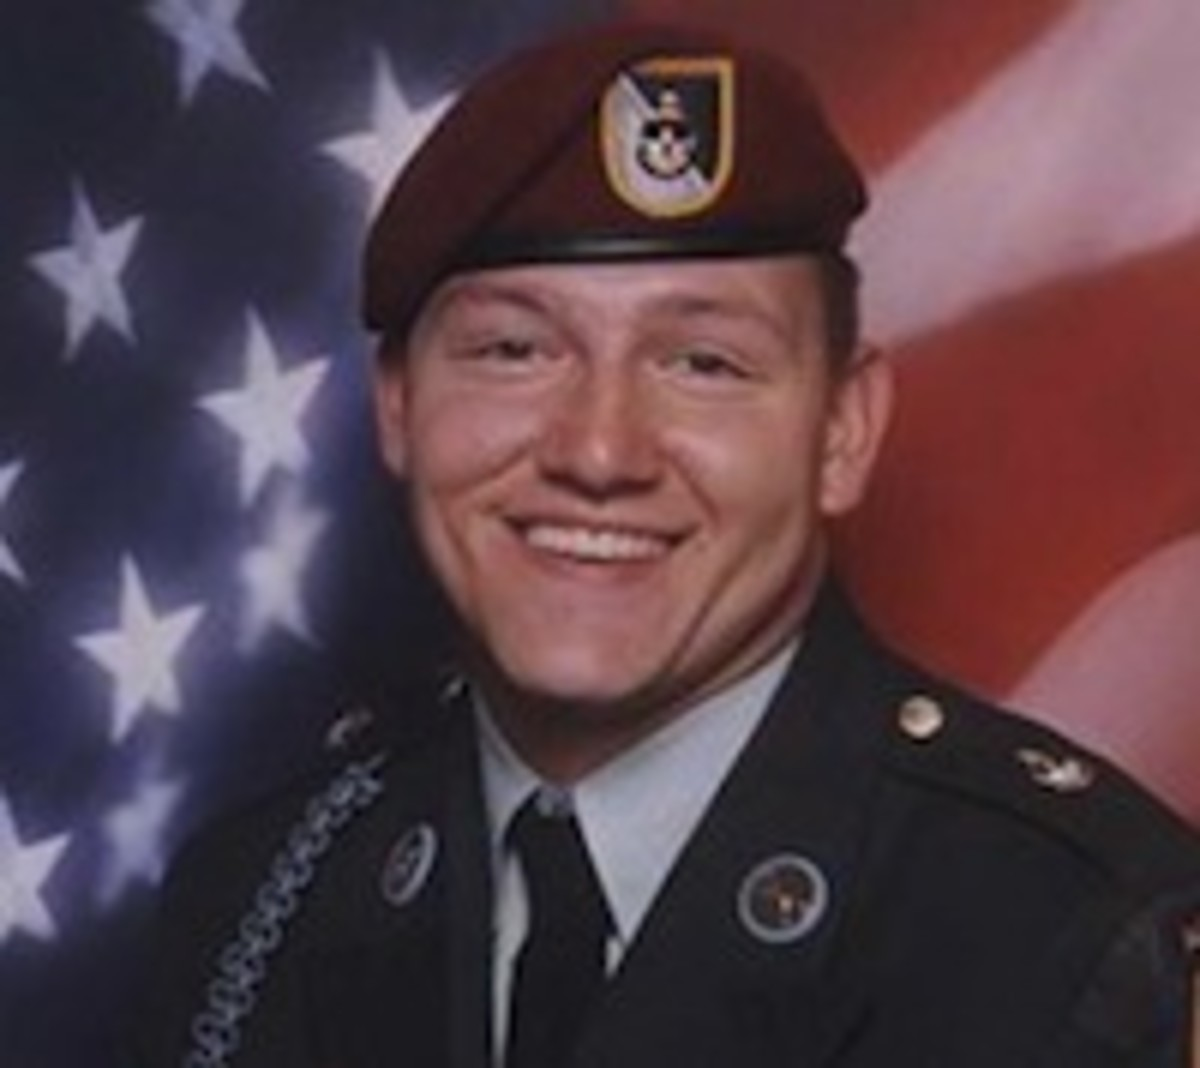 CPL Tanner J. O'Leary